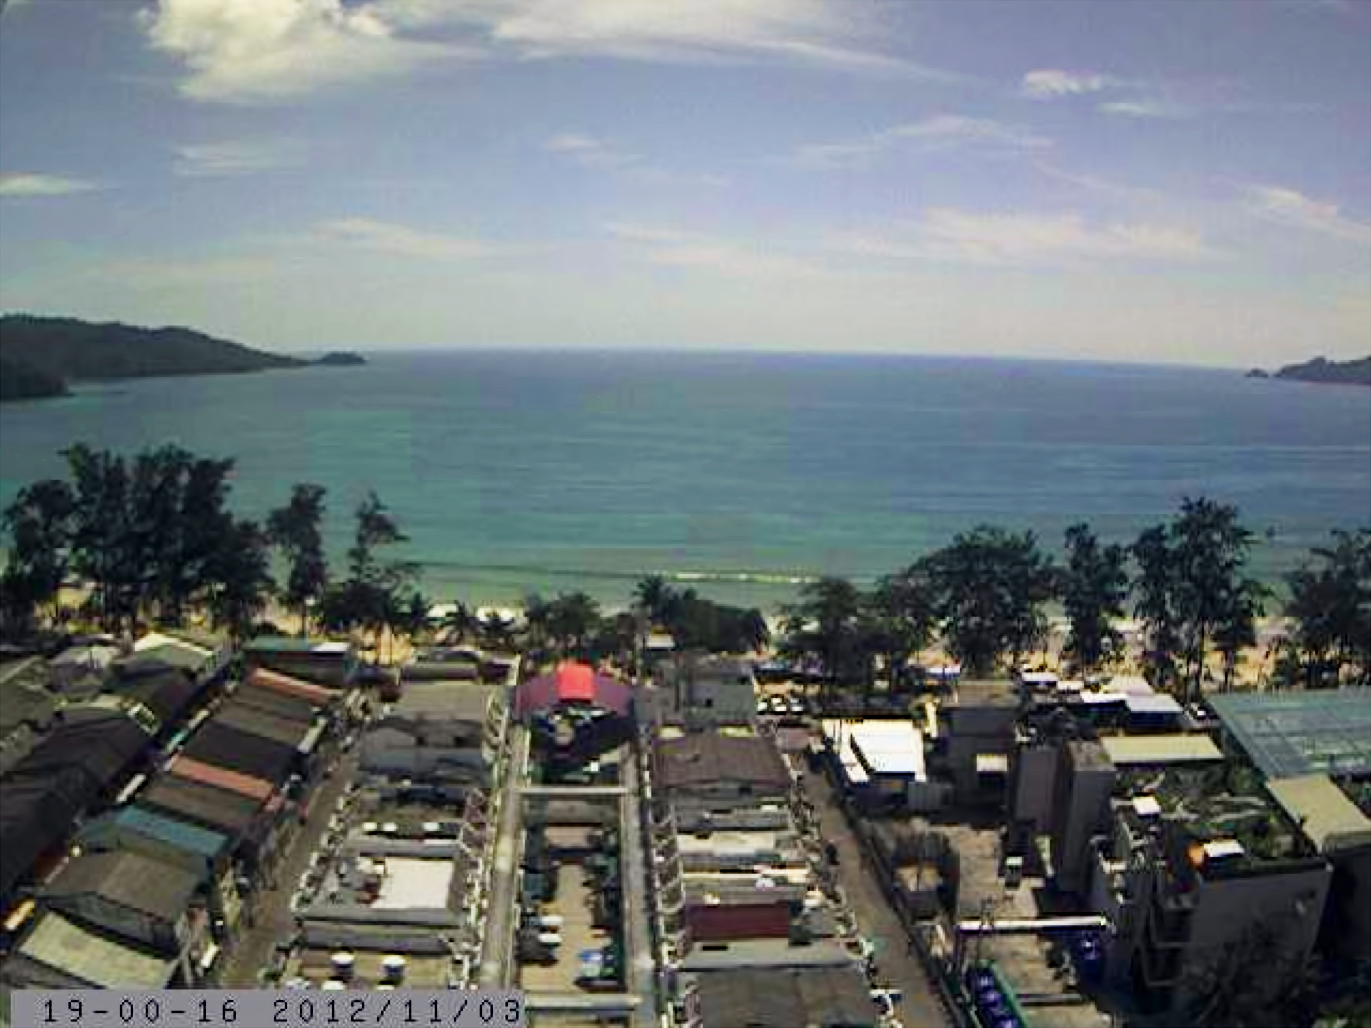 Phuket Weather Webcam – How is the weather in Phuket RIGHT NOW?